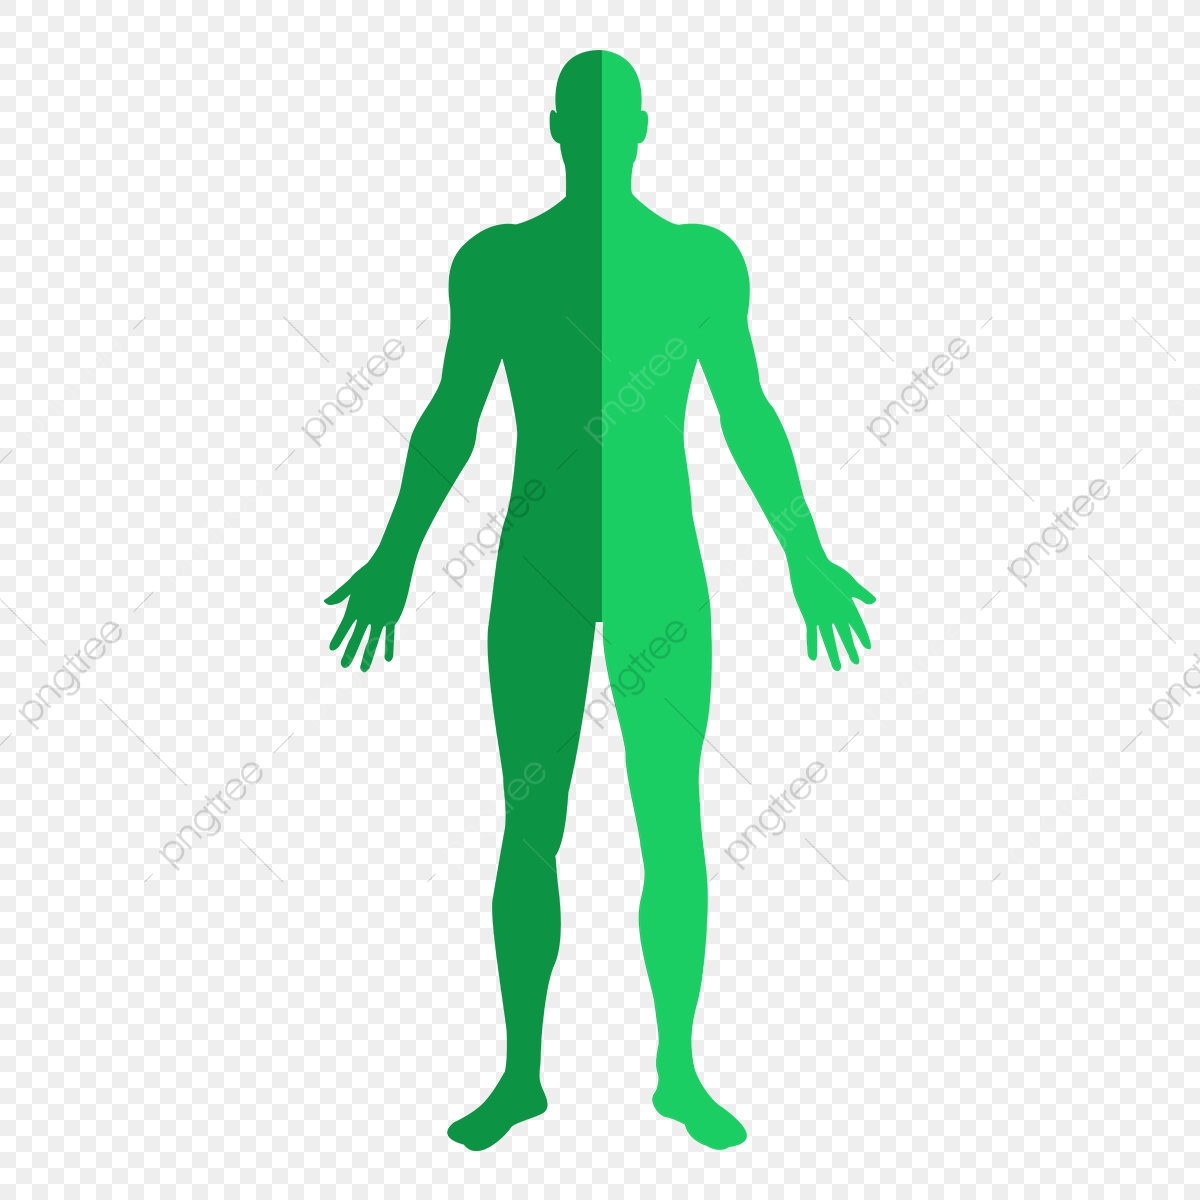 human body png images vector and psd files free download on pngtree https pngtree com freepng human body info graphics 4093233 html